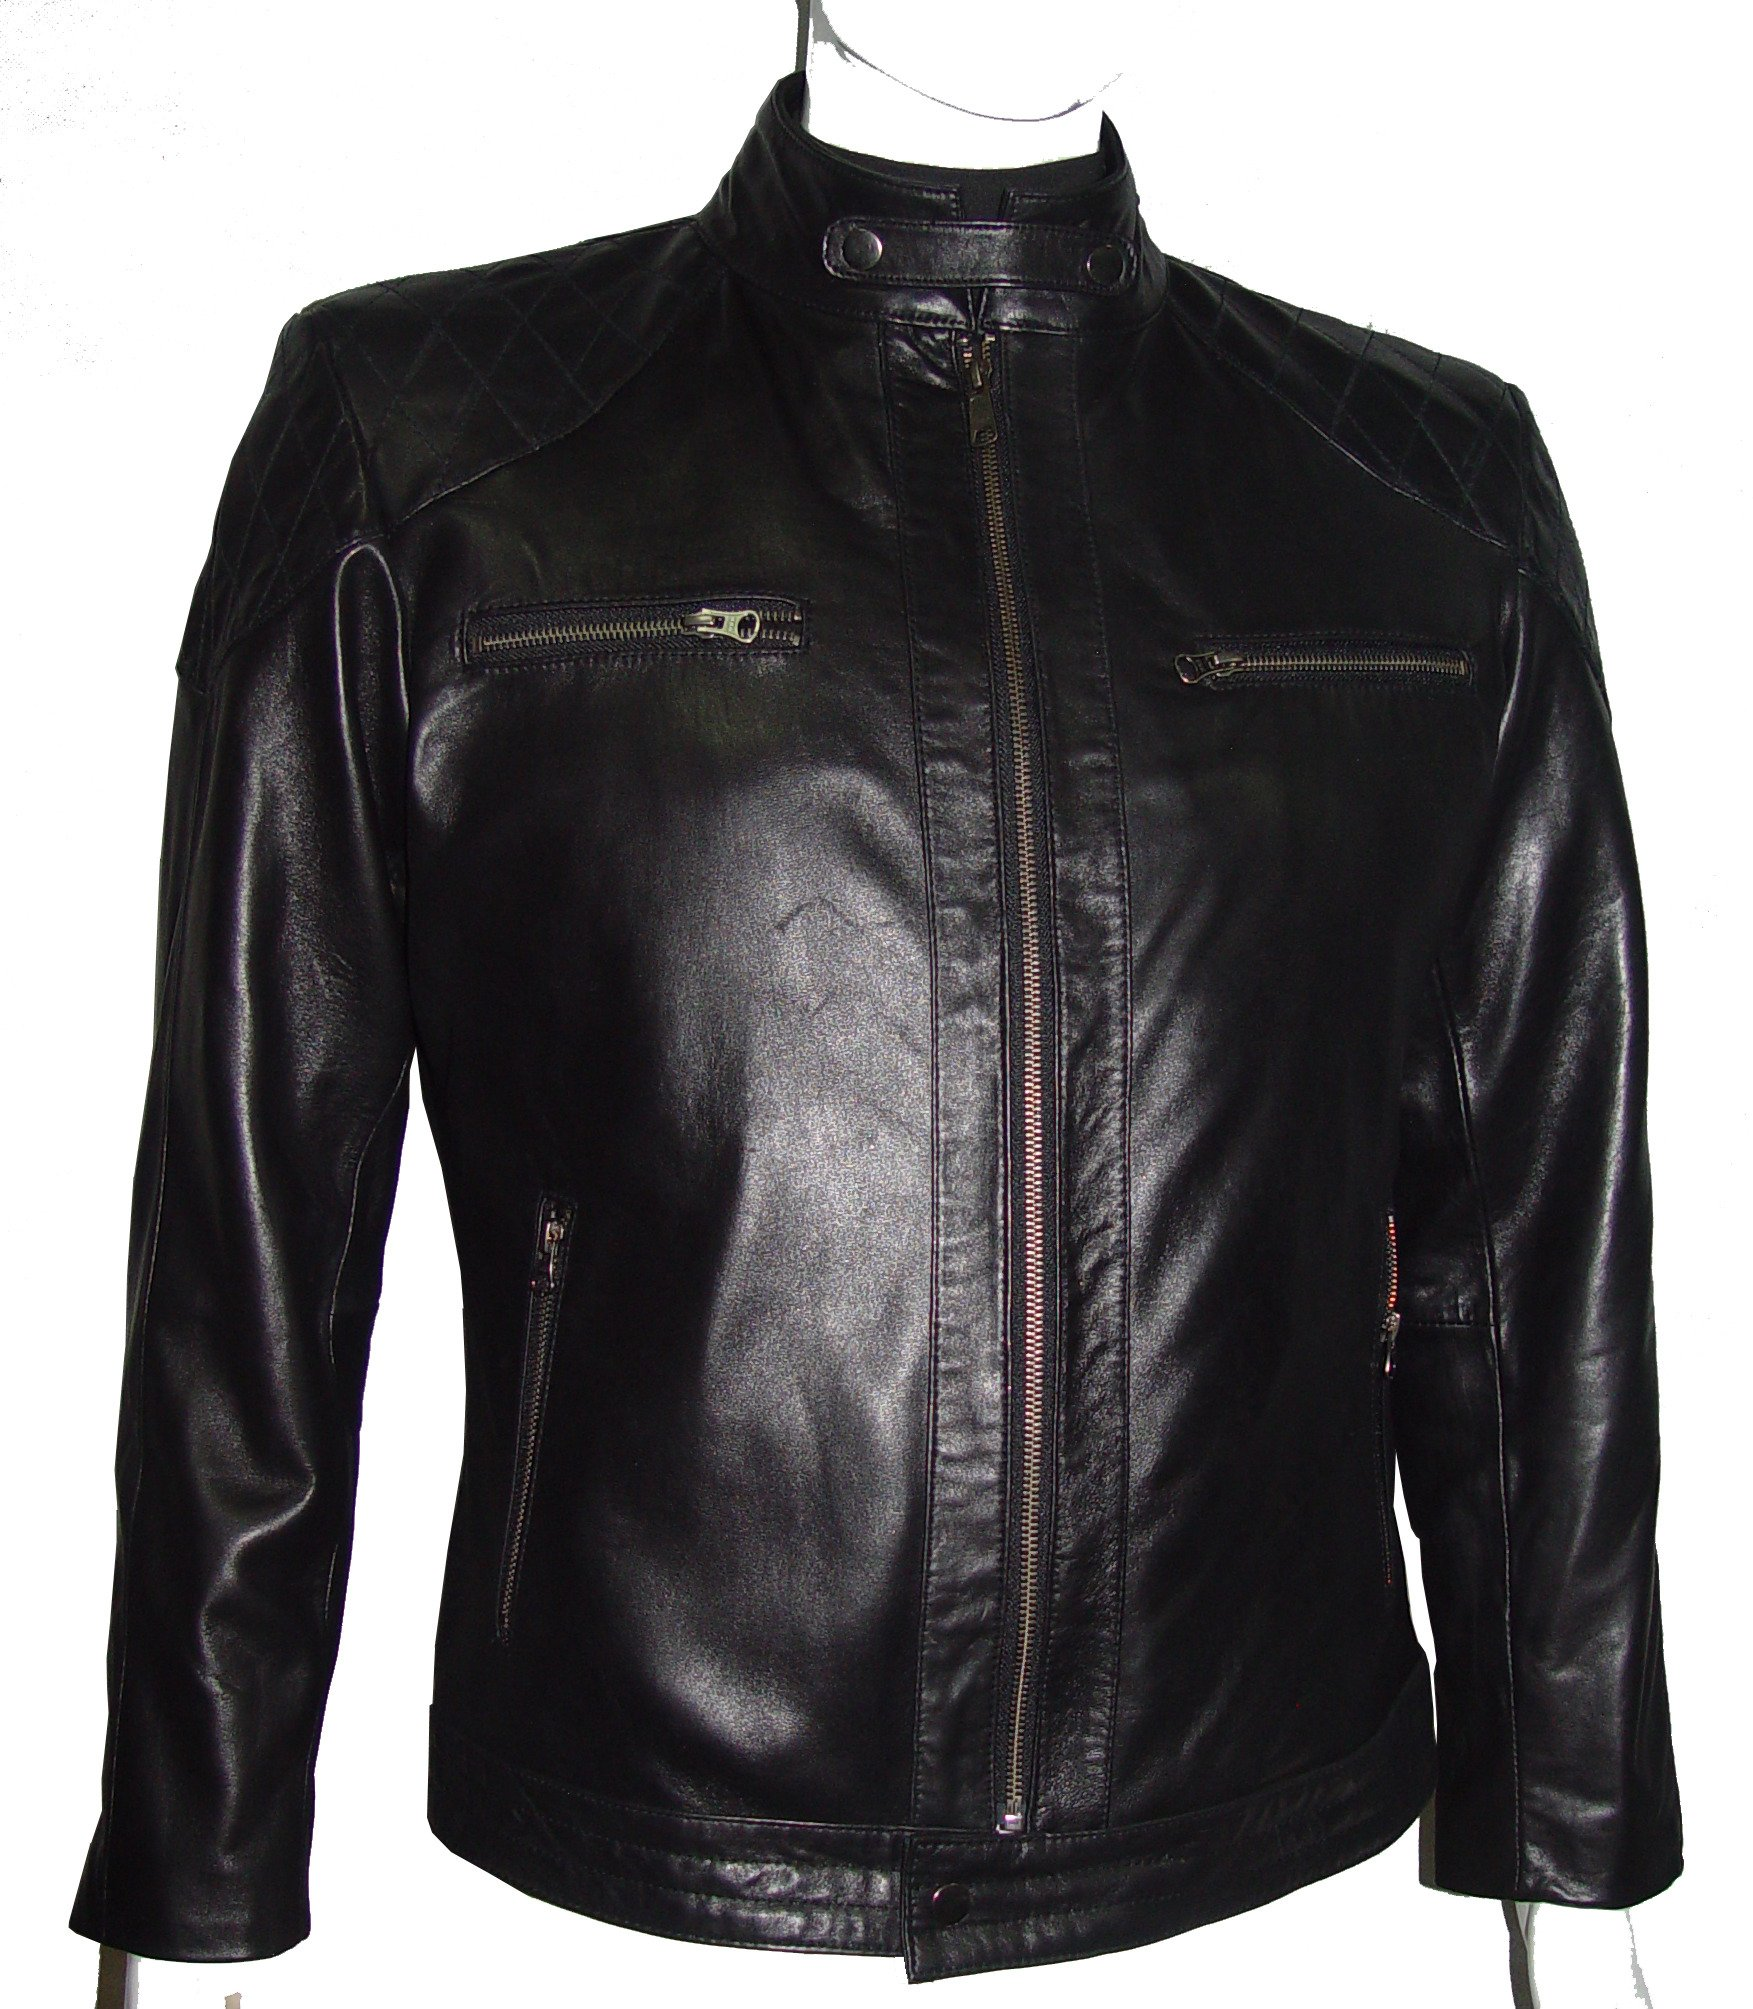 Nettailor 1164 Mens Leather Biker Jackets Cool Fine Quilted Jacket & Coats